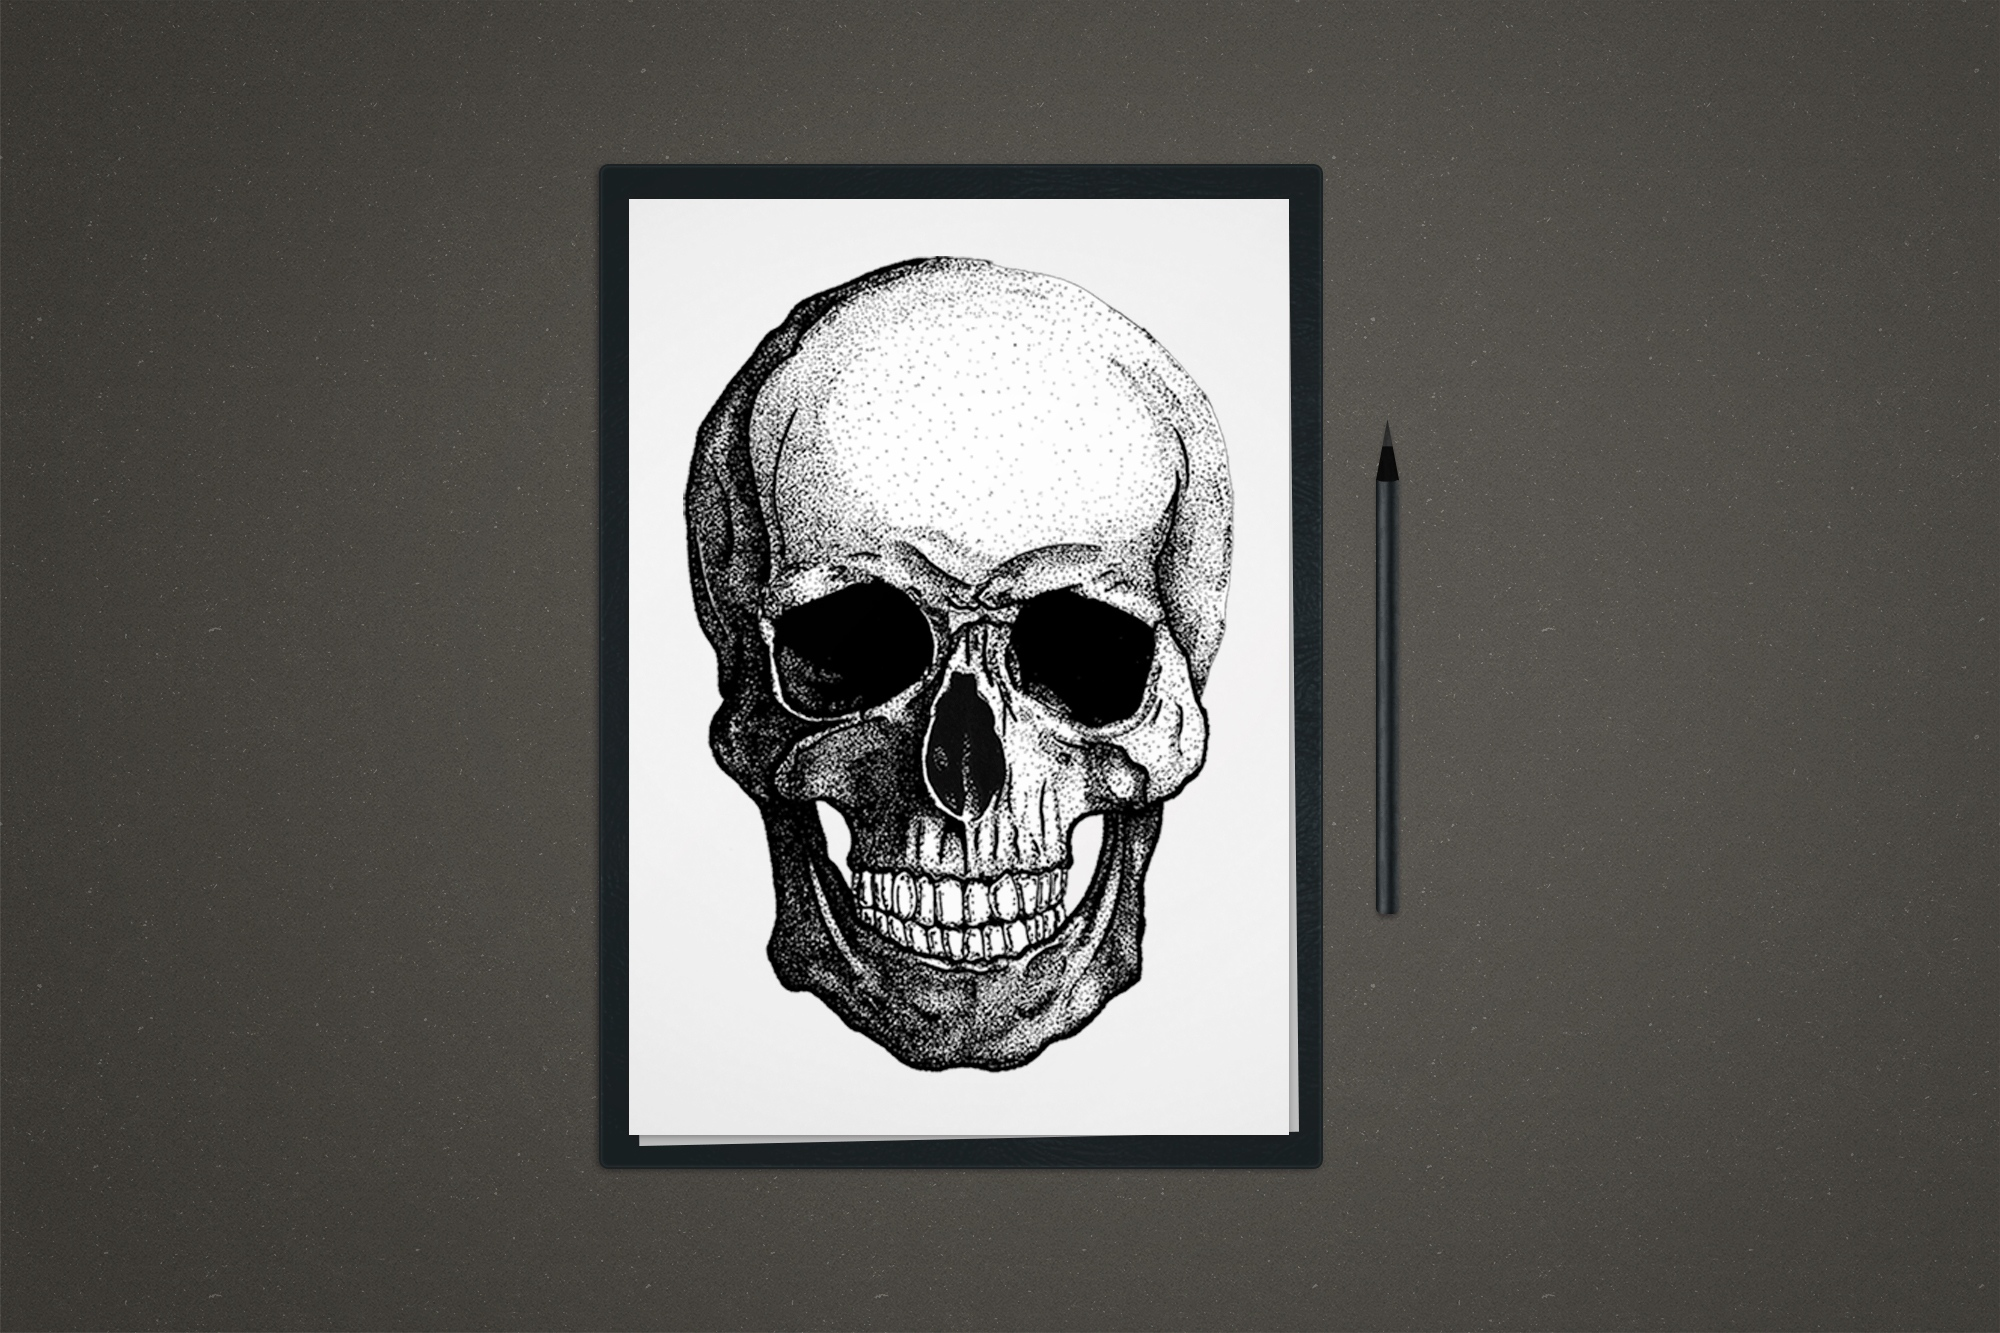 Skull's Head Illustration in a4 white paper and pencil